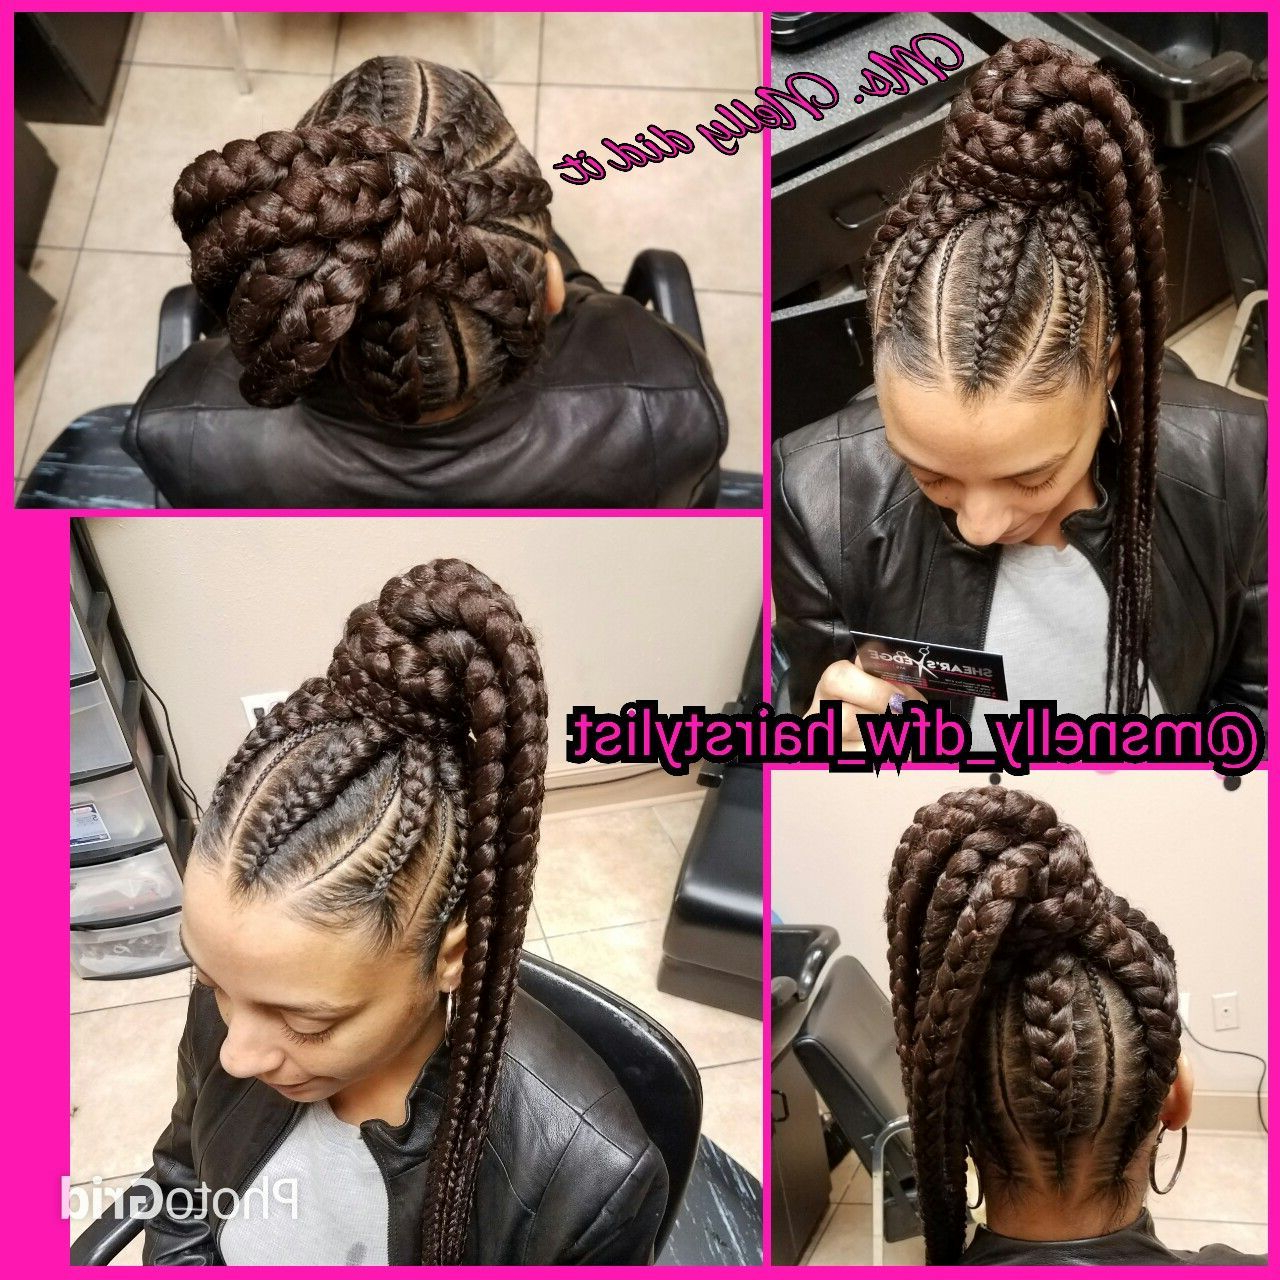 High Ponytail Feeder Braids, Small Braids In Between Pertaining To Trendy High Ponytail Braided Hairstyles (View 11 of 20)